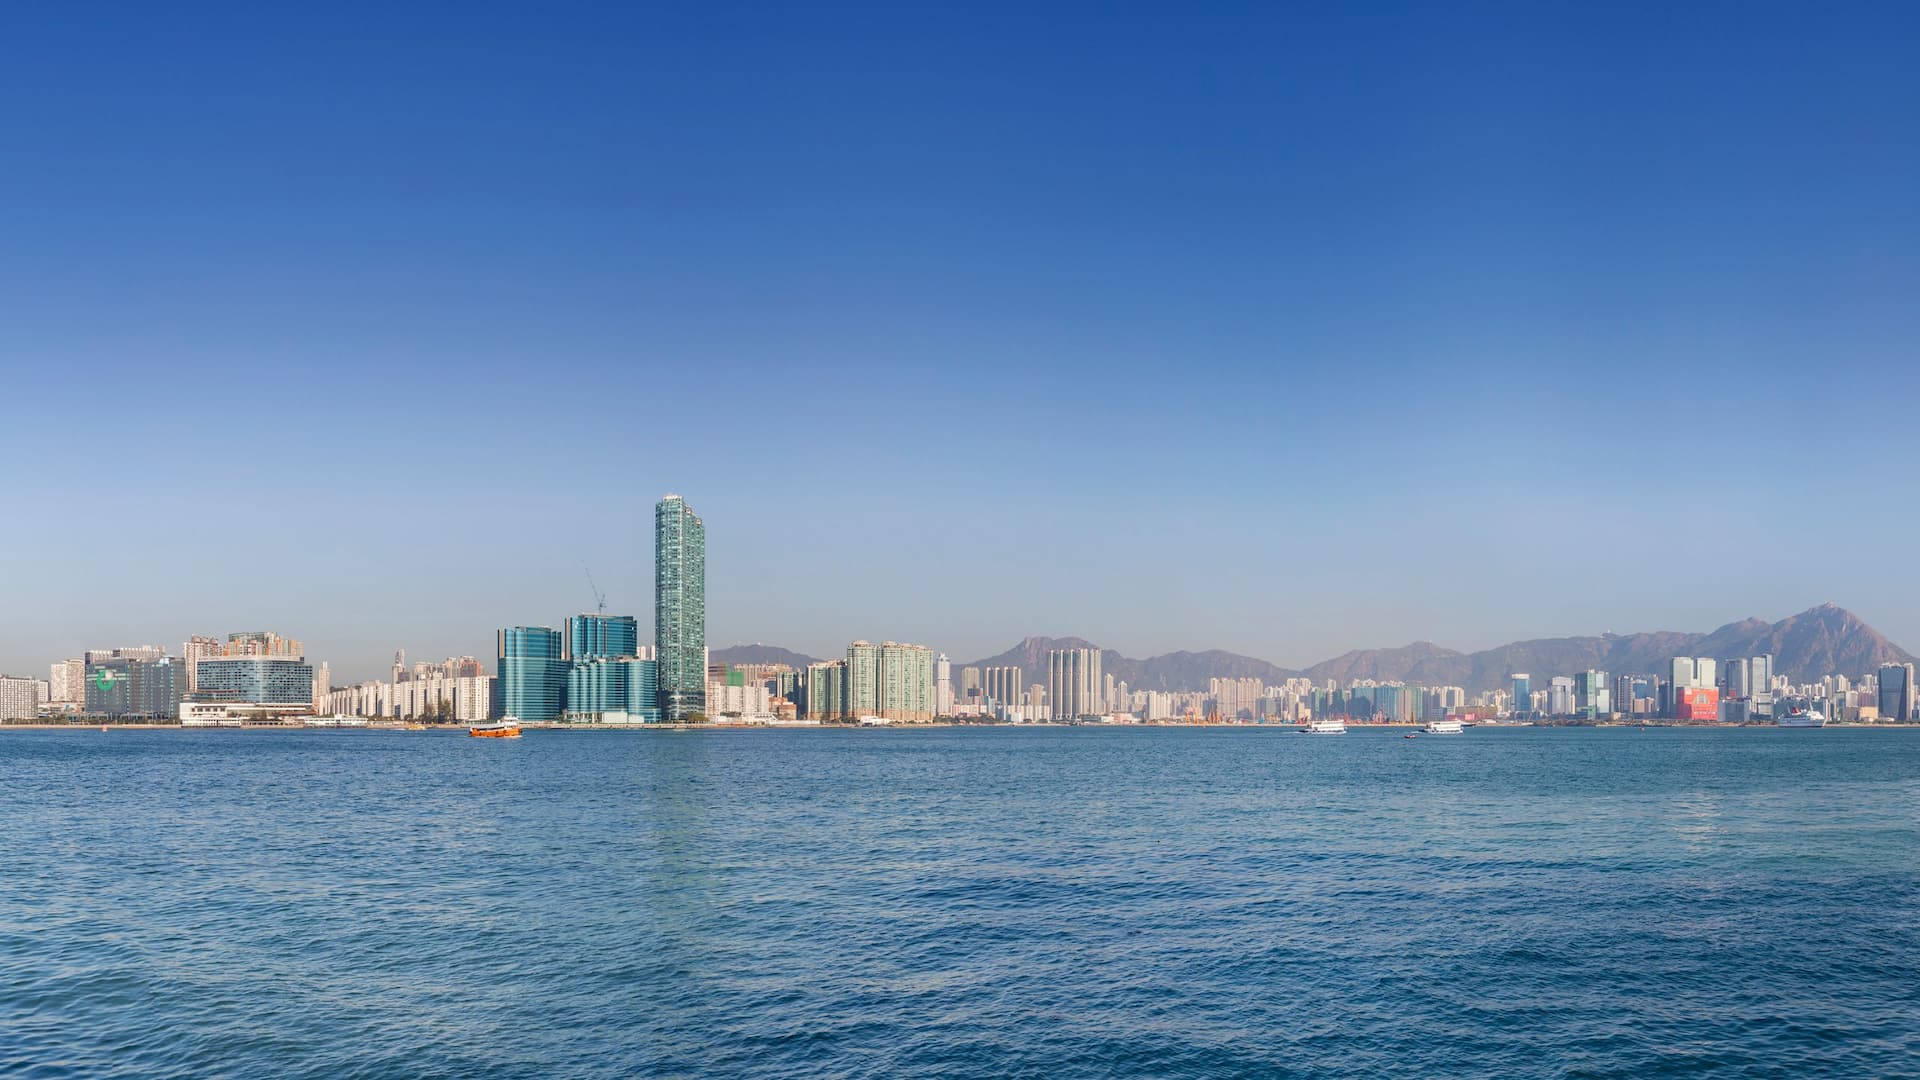 Hyatt Centric Victoria Harbour Panoramic Day View